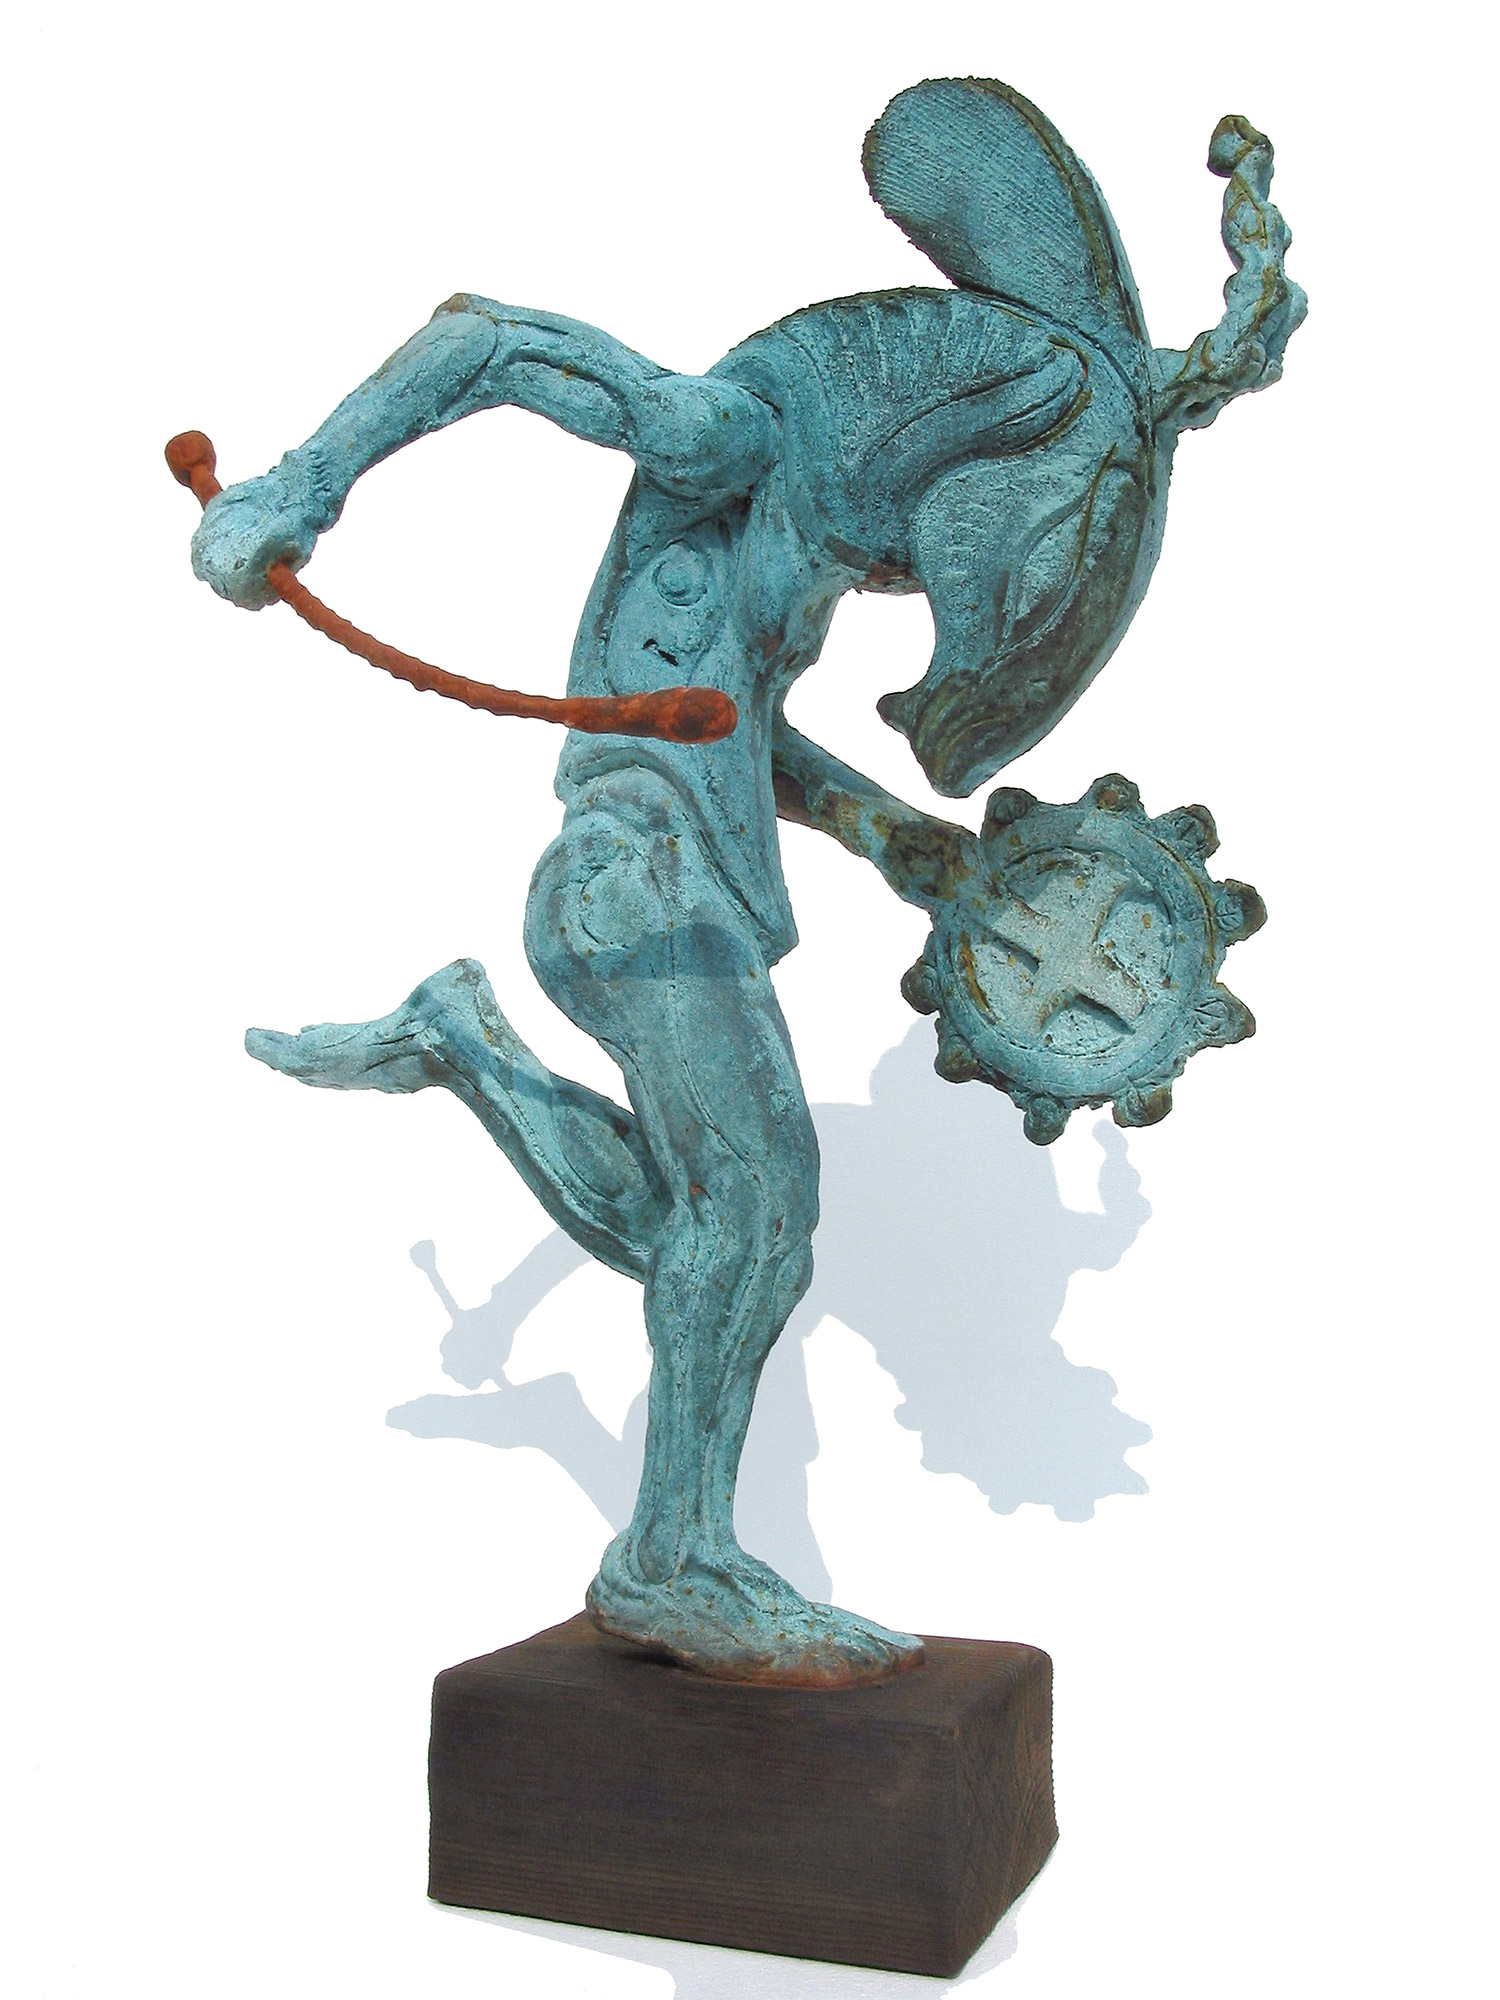 """Satyr with Bodhran  ©  48 cm high x 33 cm wide  Unique  The goat-headed figure being both satanic and pantheistic has been a stubborn subject in art - Picasso made much of it.  """"I wanted an ancient creature with long ears that wasn't a hare or a donkey and an instrument that played the sound of time."""""""